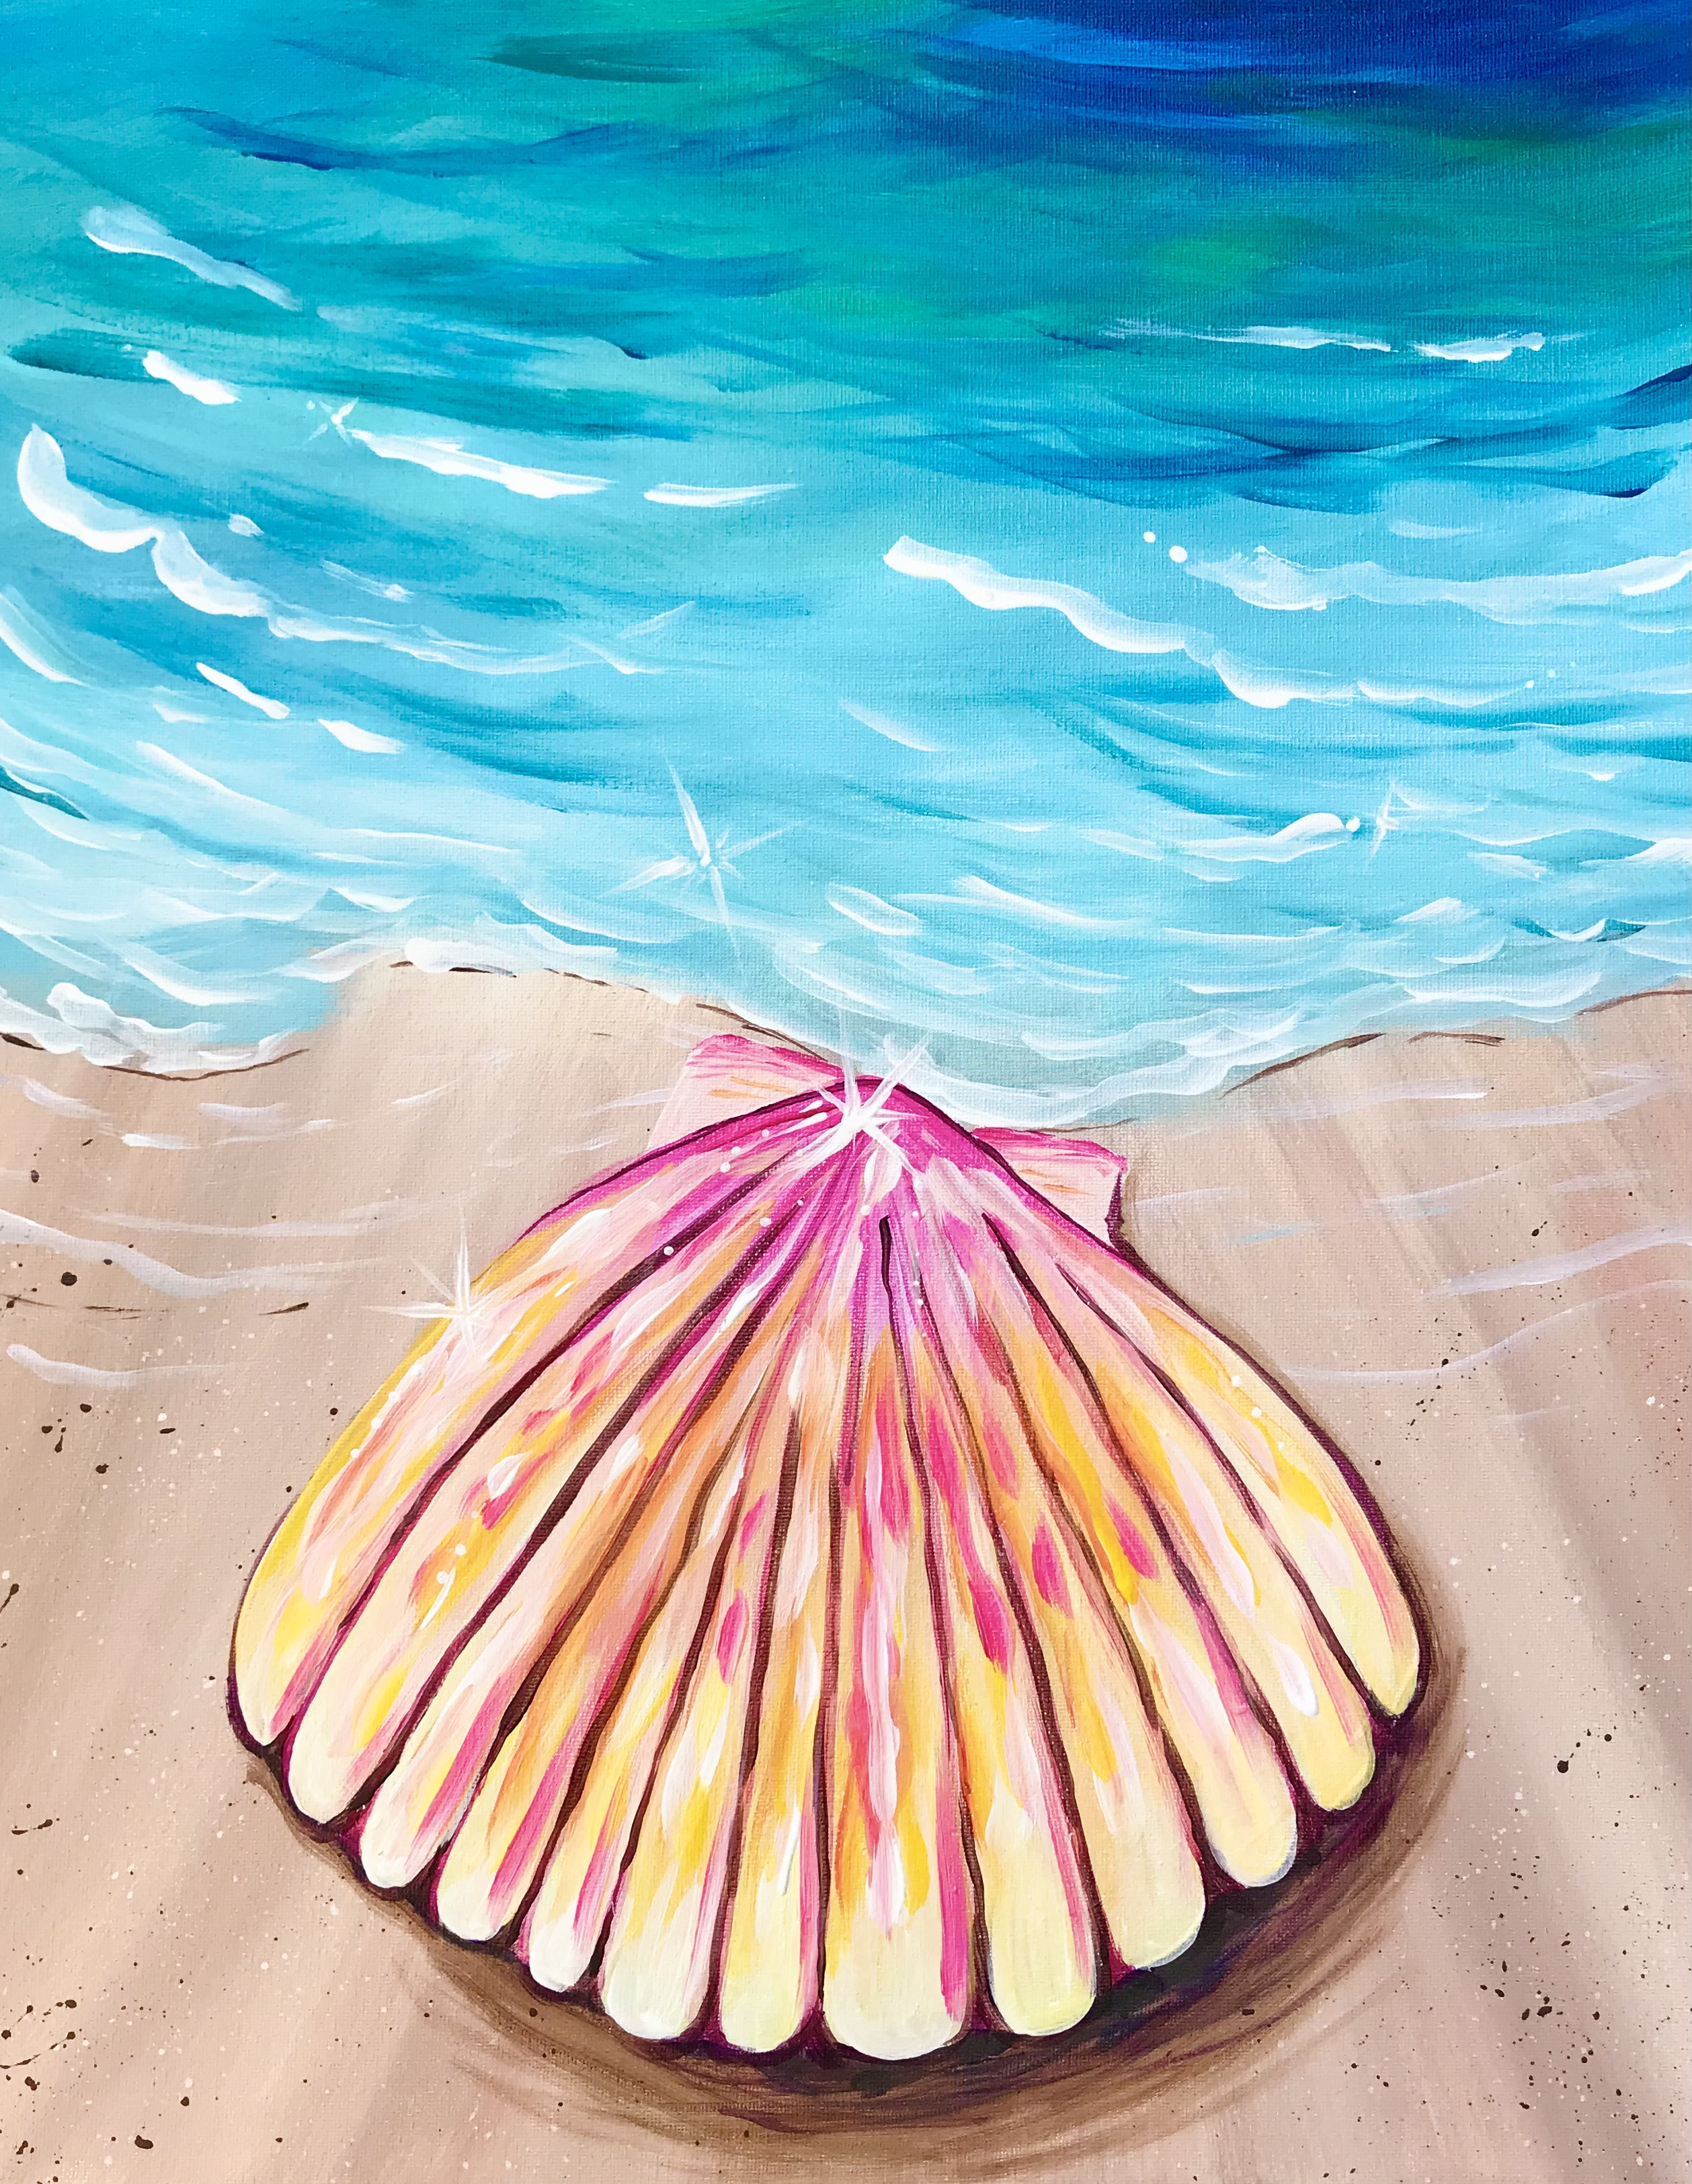 A Scallop Seashell experience project by Yaymaker